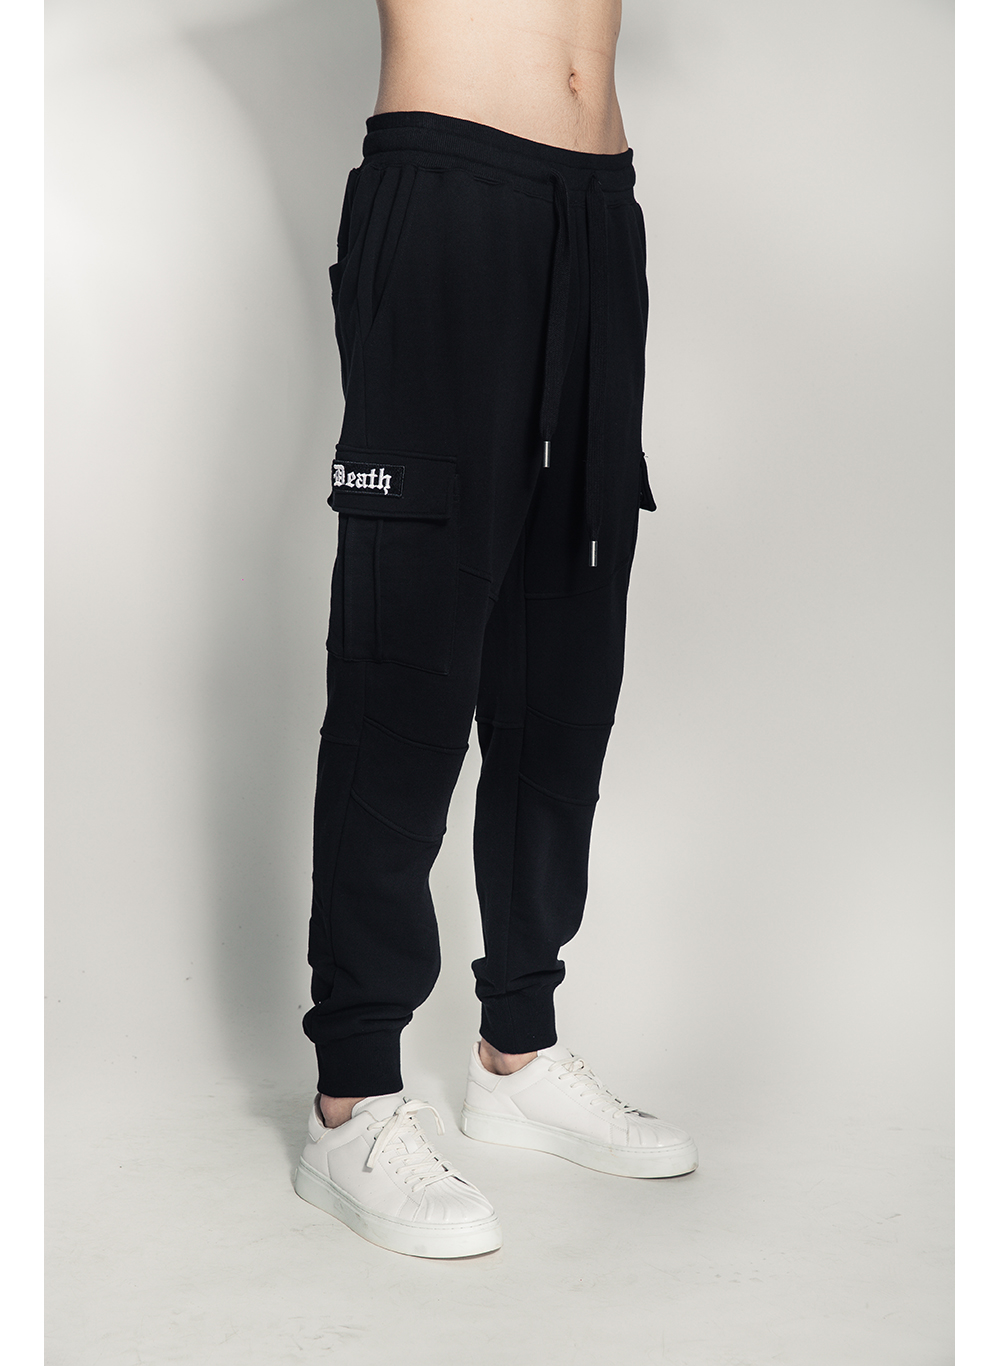 Neighborhood Sniper Sweatpants